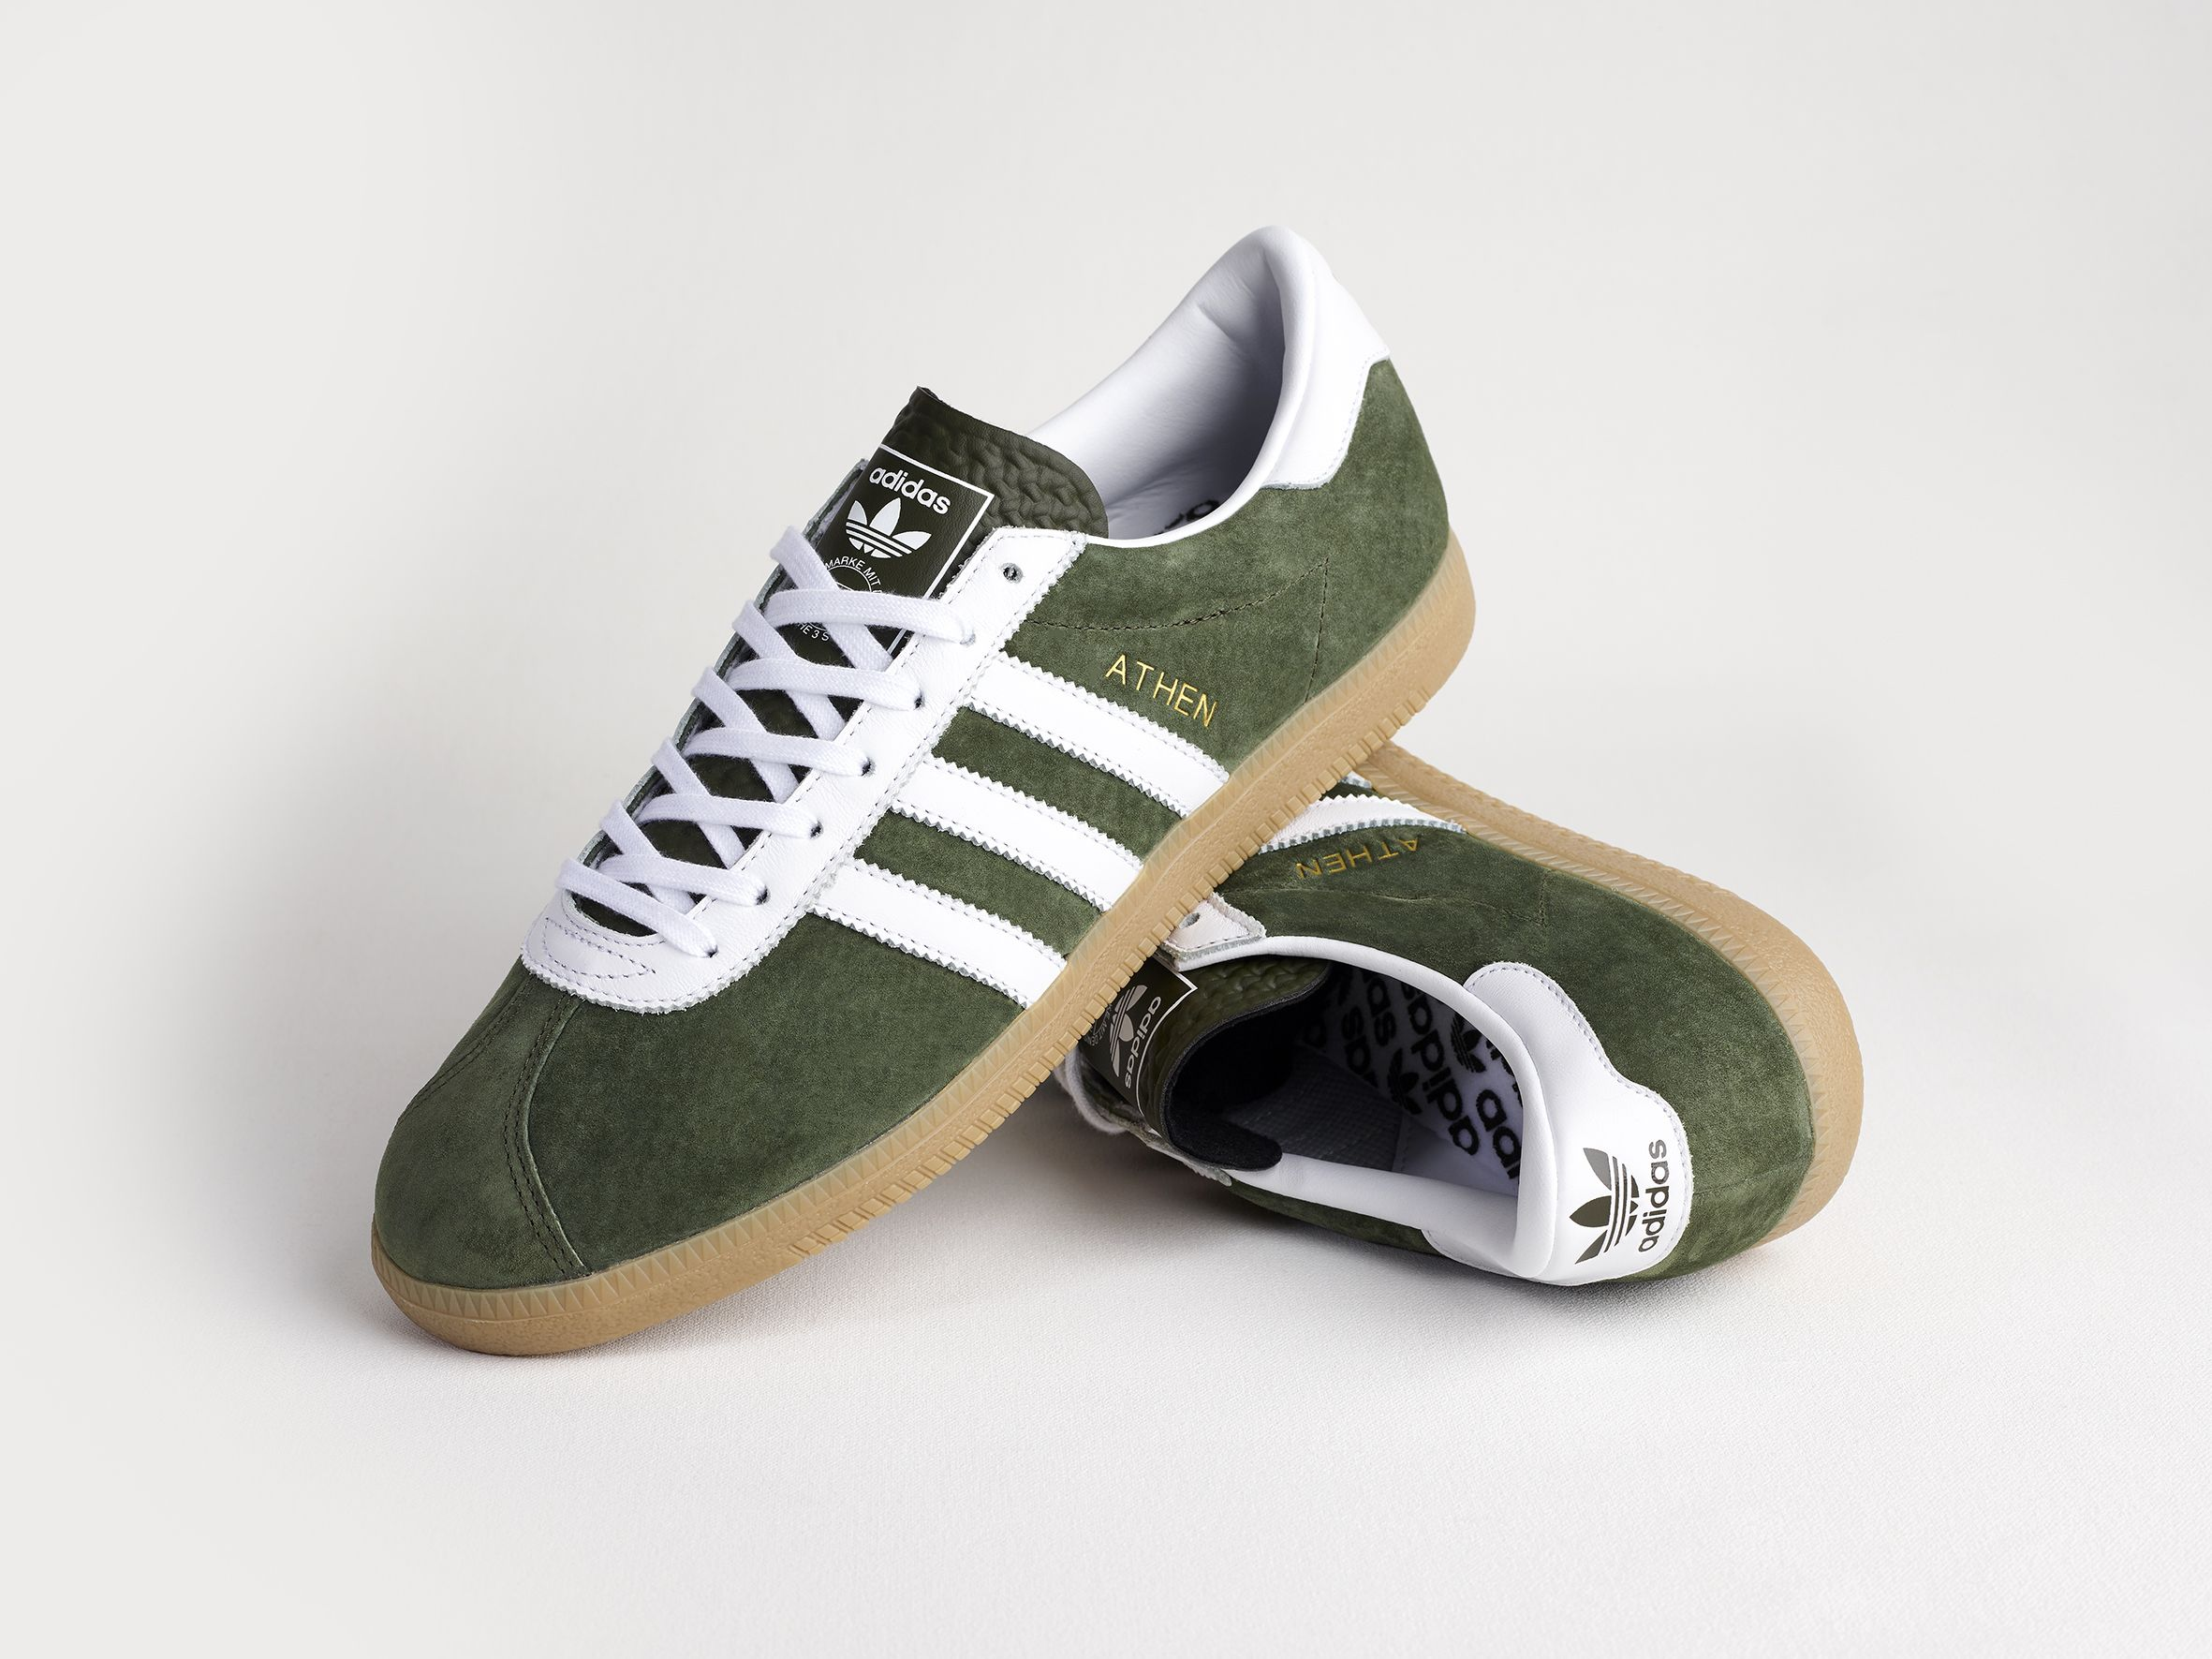 There's a new Athen finished in Forest Green coming Friday